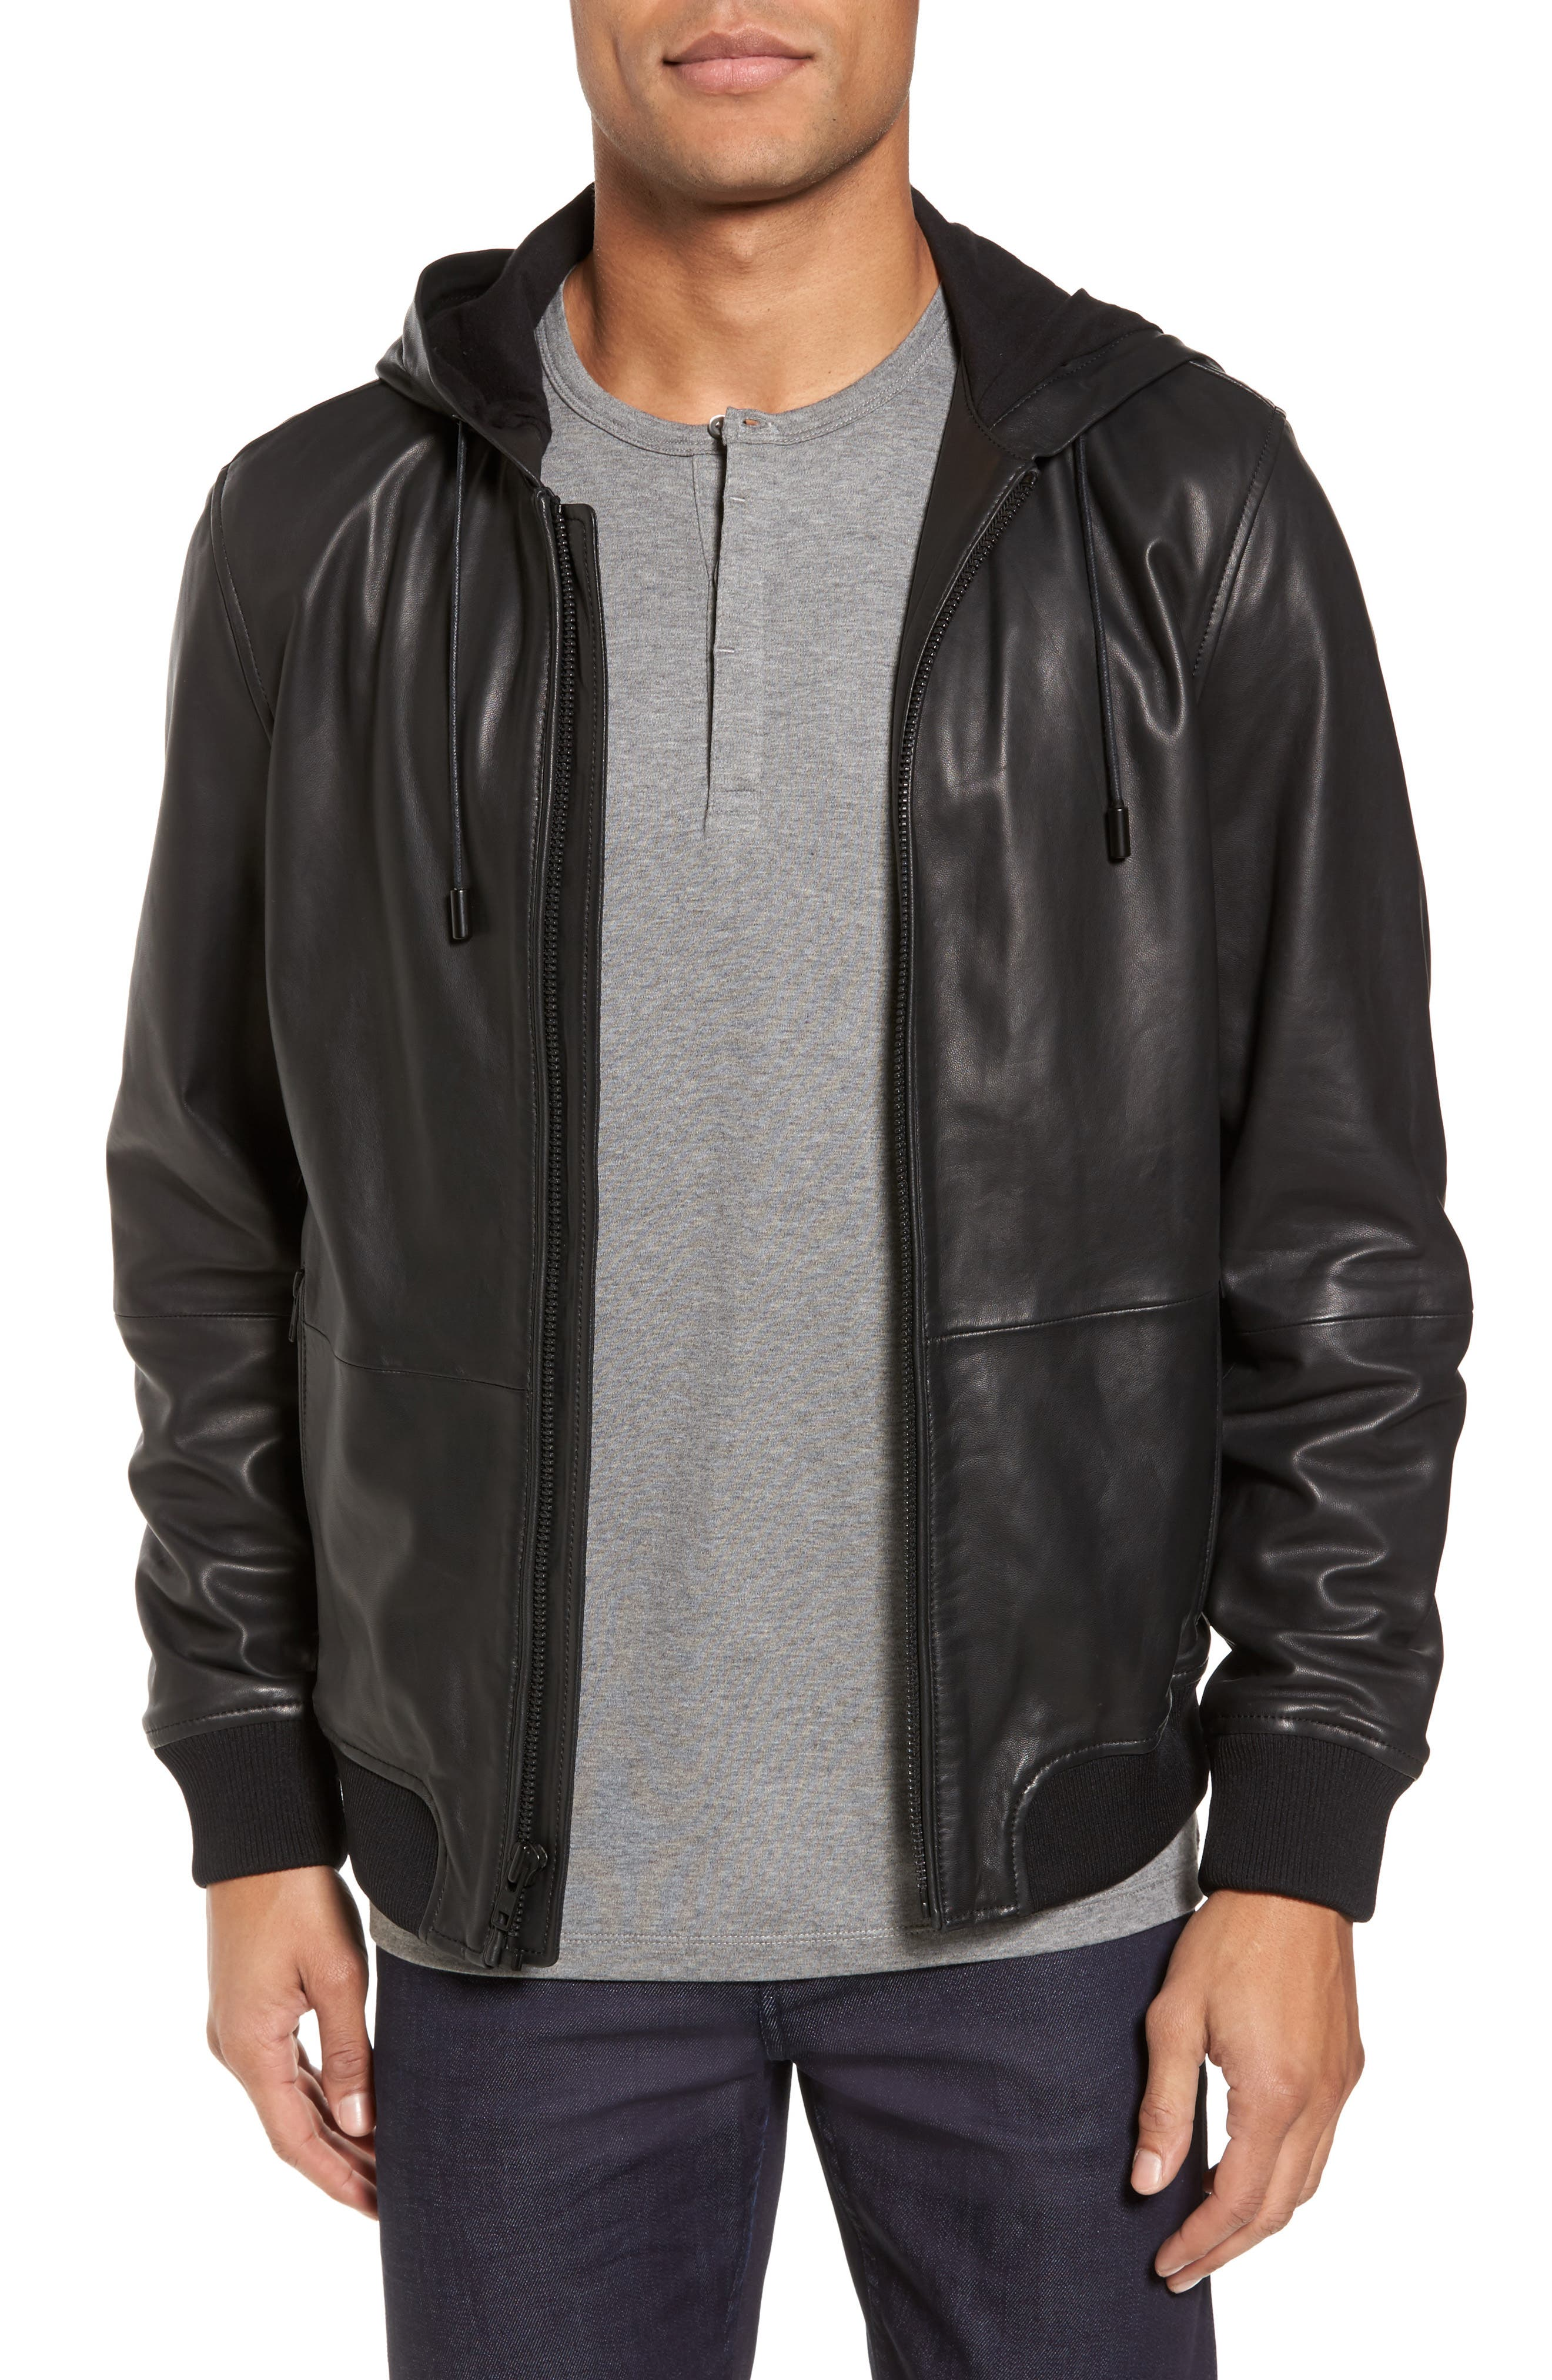 Hooded Leather Jacket,                             Main thumbnail 1, color,                             001